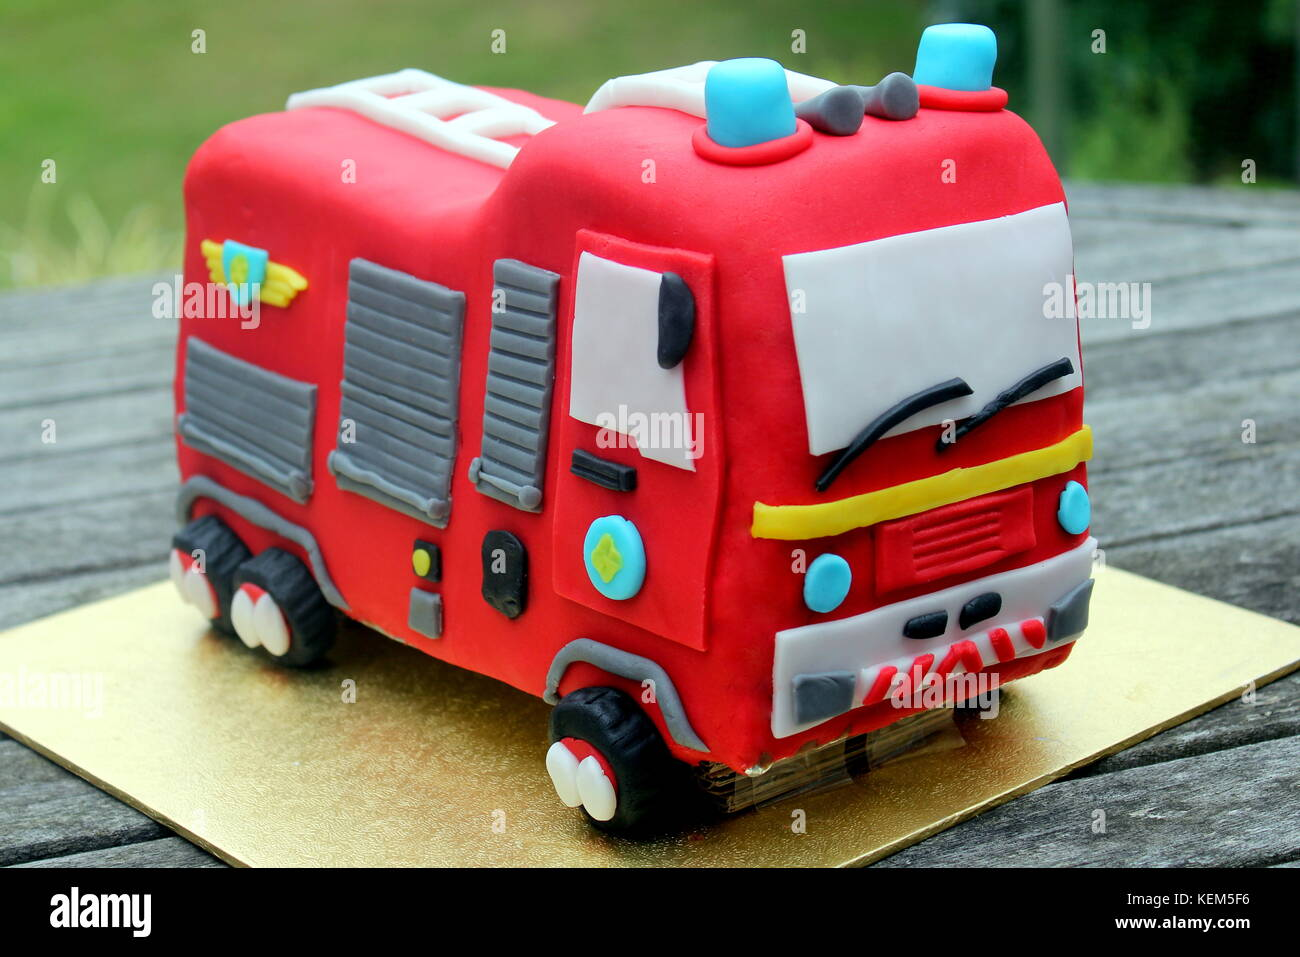 Childs homemade red fire engine birthday celebration cake on a